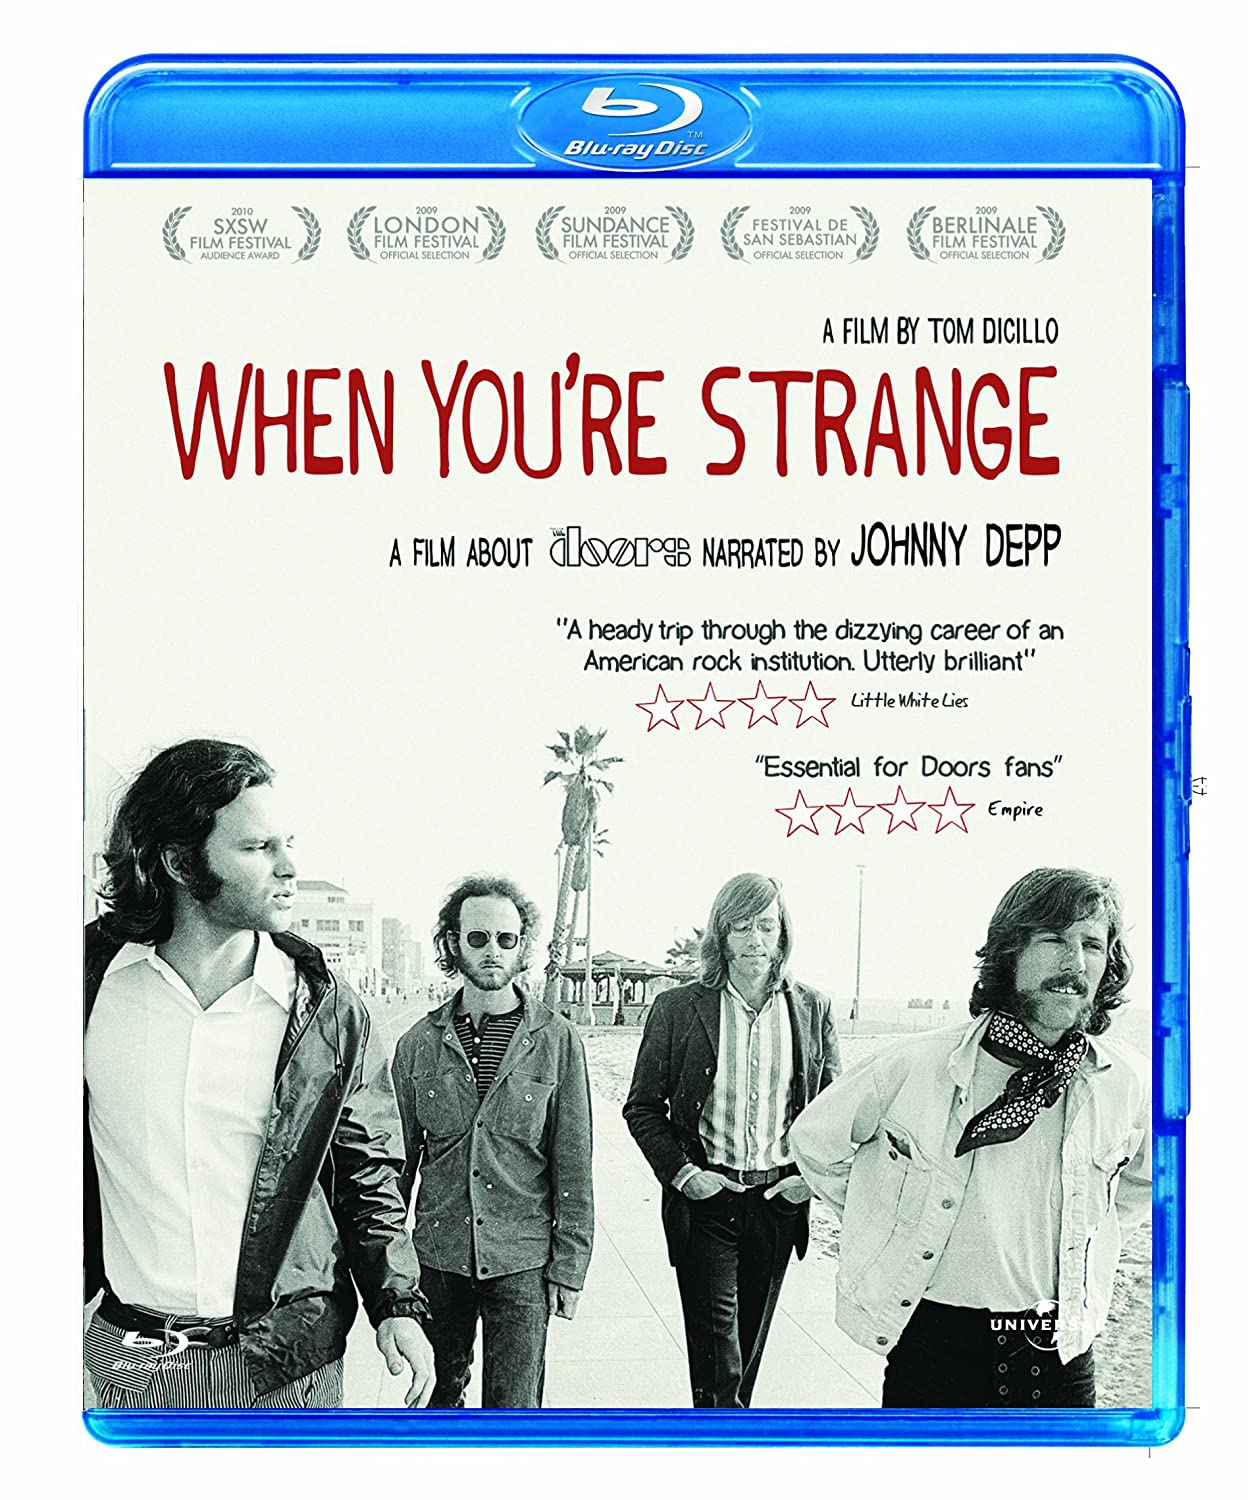 When Youu0027re Strange - A Film About The Doors Blu-ray Region Free Amazon.co.uk Jim Morrison Ray Manzarek John Densmore Robby Krieger Tom Dicillo ...  sc 1 st  Amazon UK & When Youu0027re Strange - A Film About The Doors Blu-ray Region Free ... pezcame.com